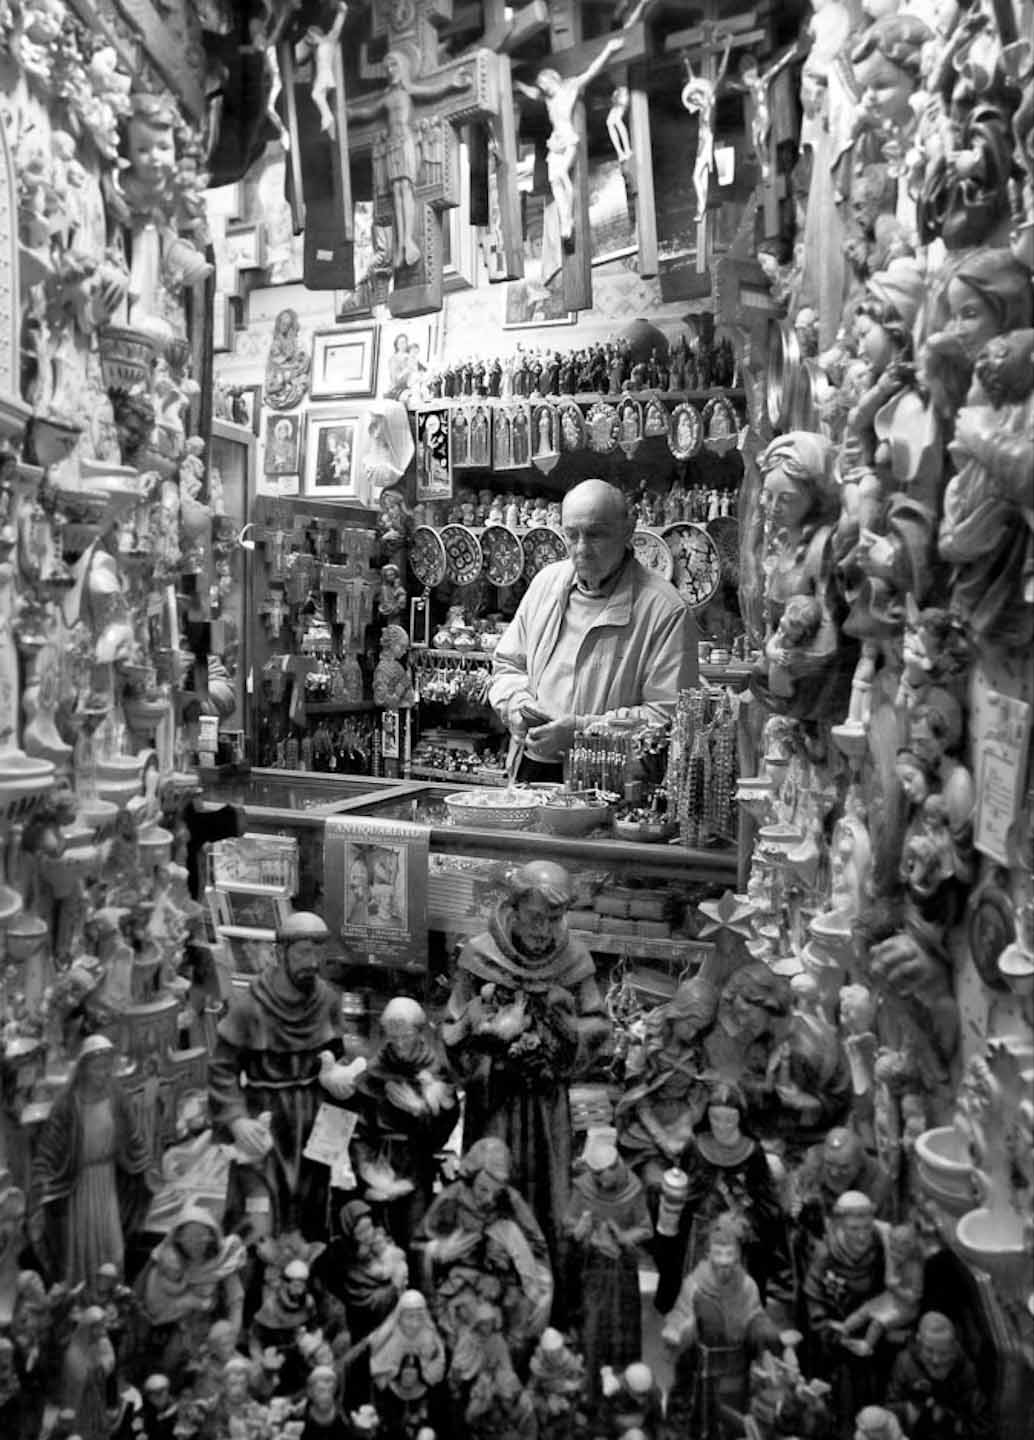 Italy_Trinket shop Assisi 2.jpg